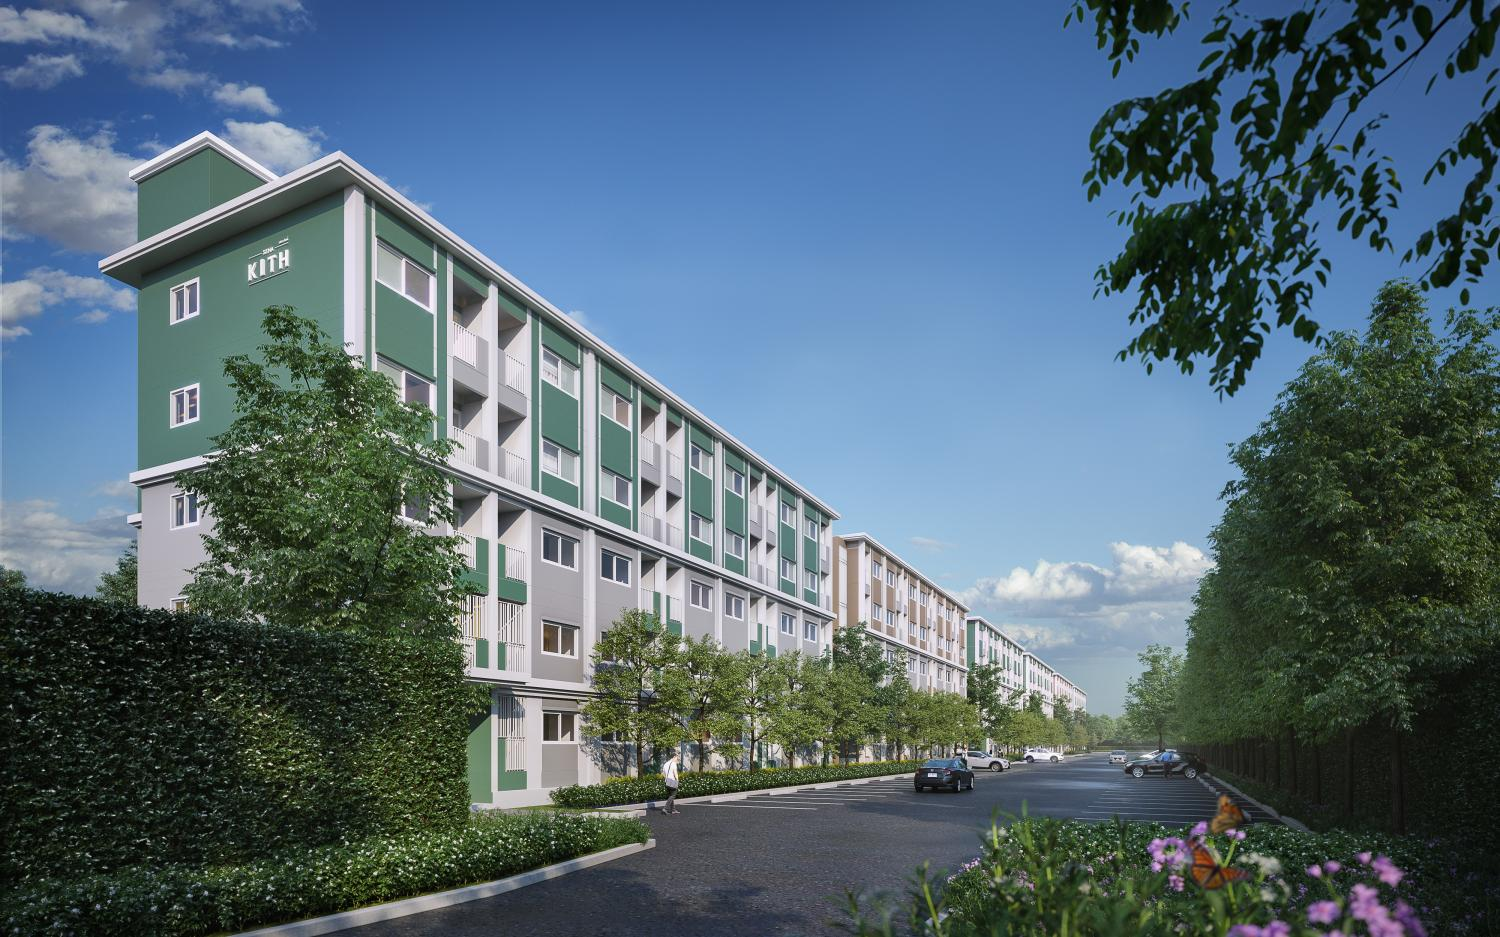 An artist's rendition of Sena Kith Thepharak-Bang Bo, a lower-priced condo project Sena Development launched last year with units priced from 800,000 baht.